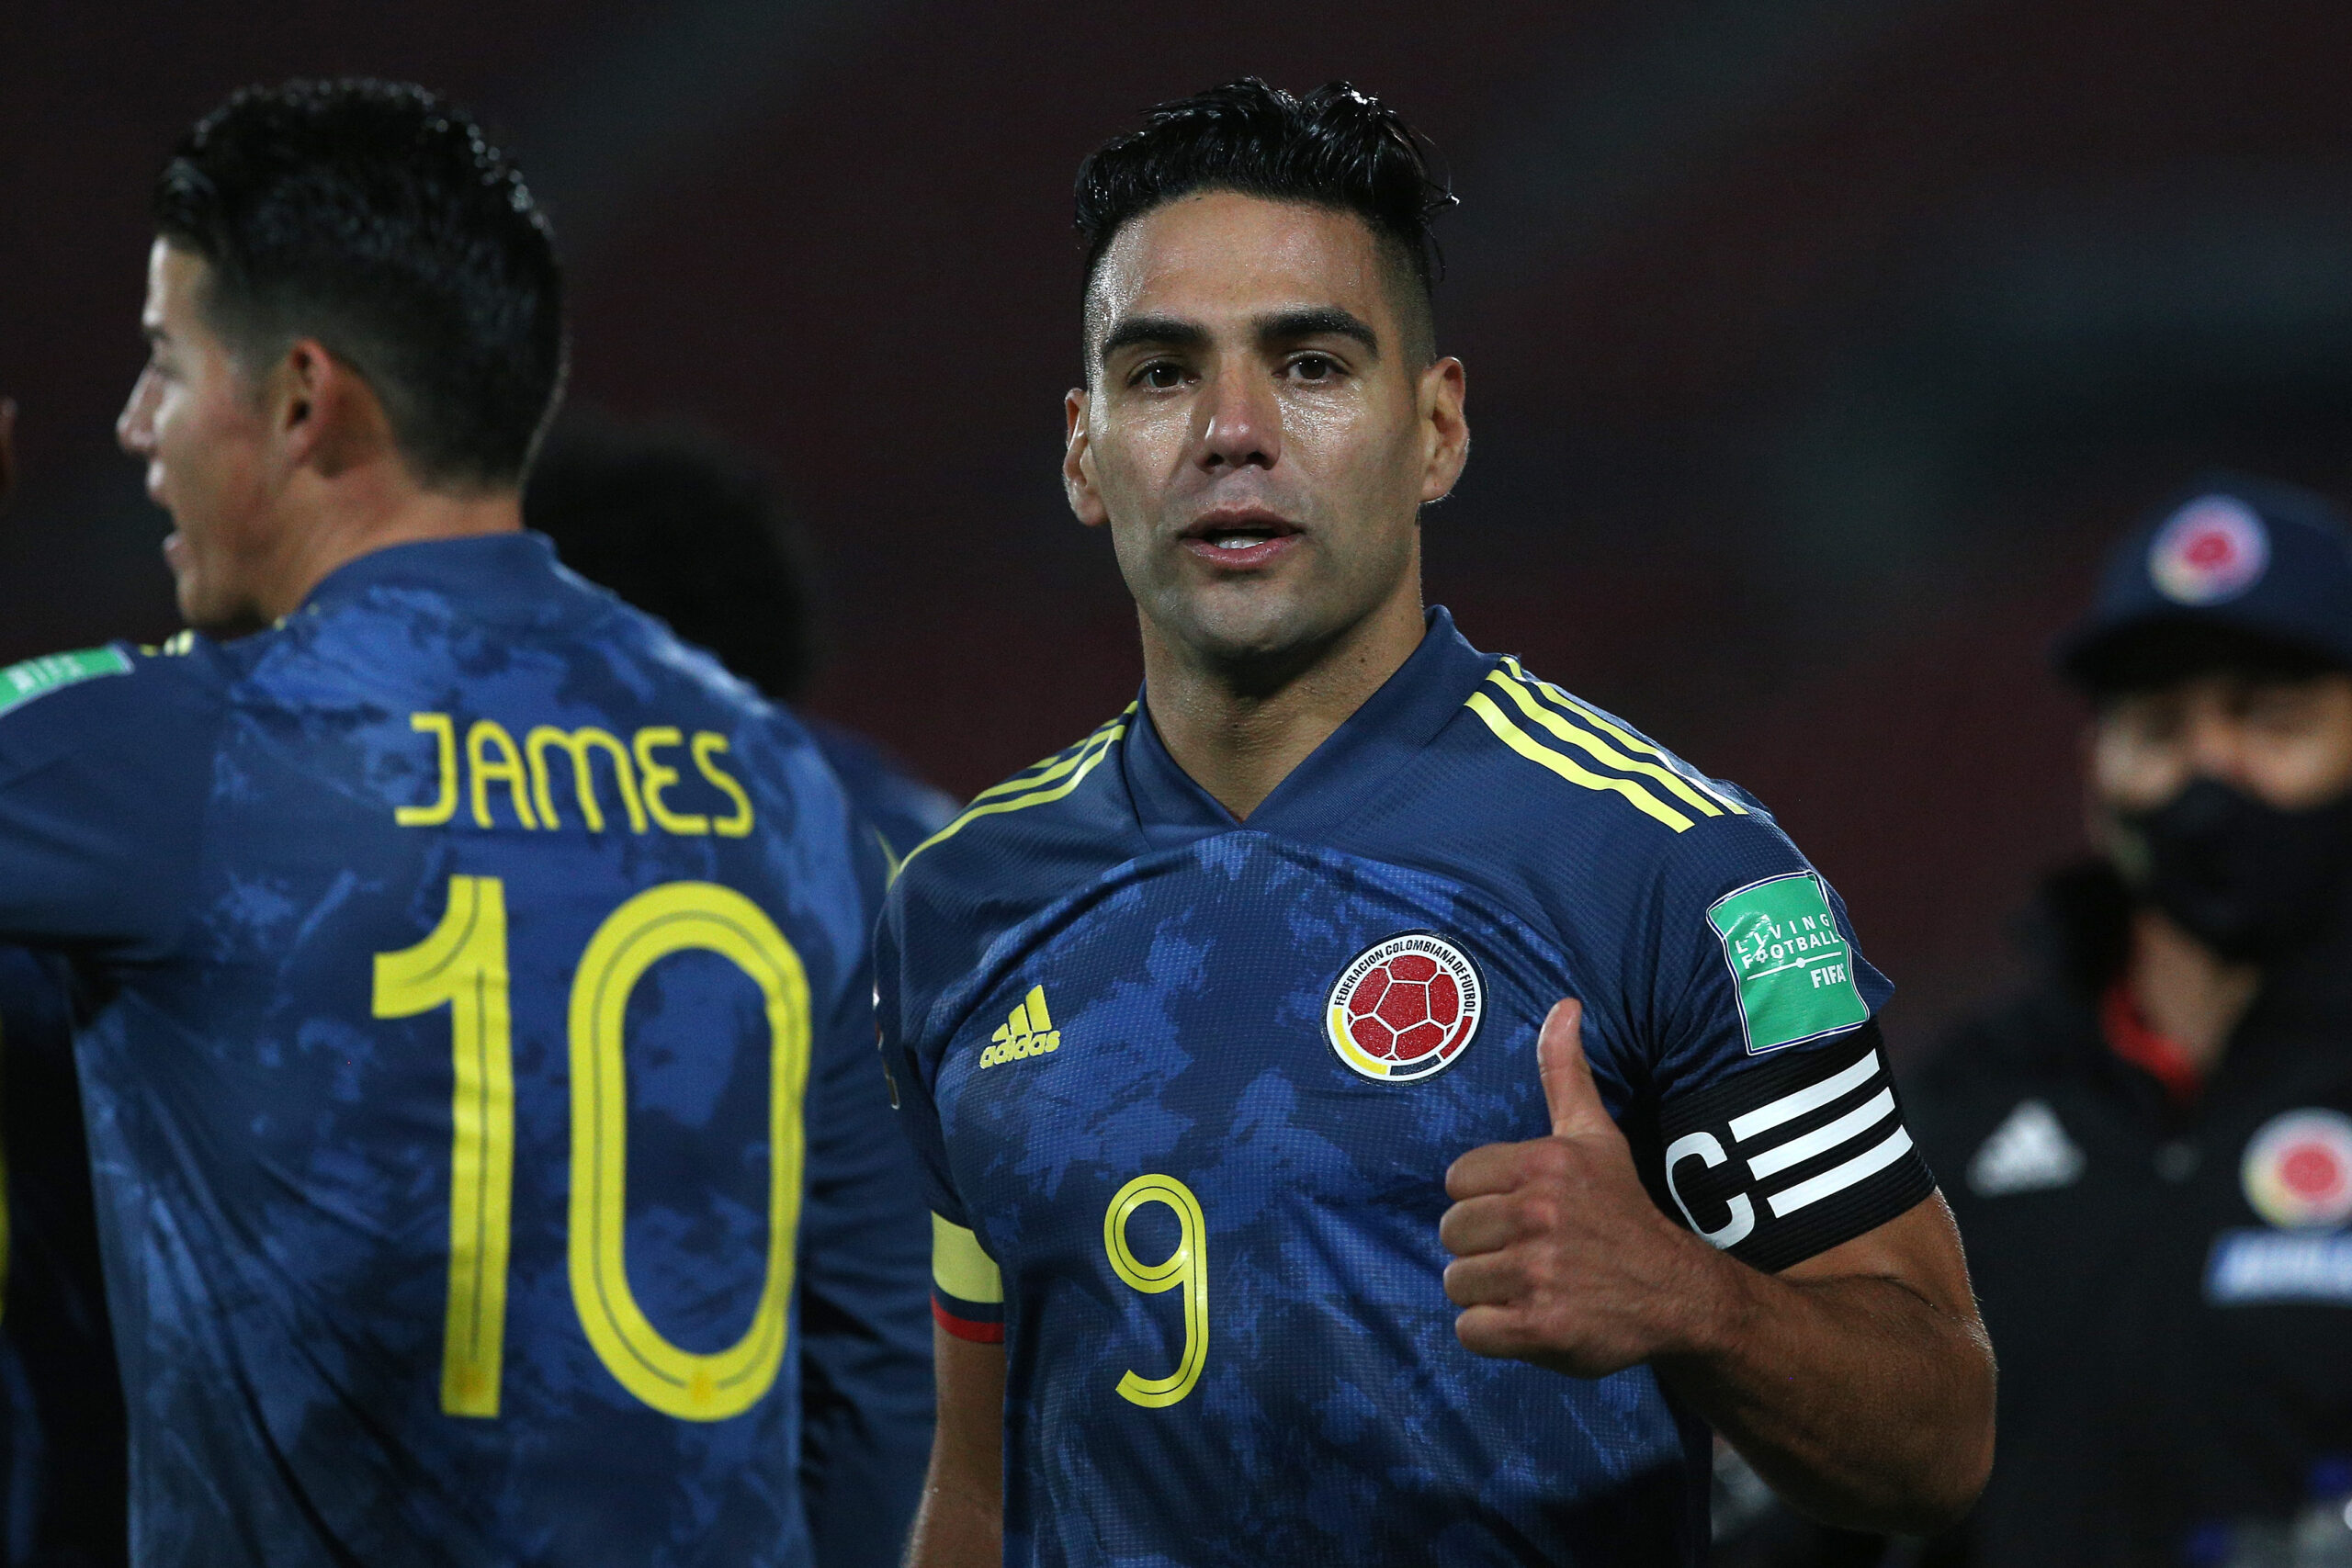 Fichajes: Falcao, posible alternativa a Costa